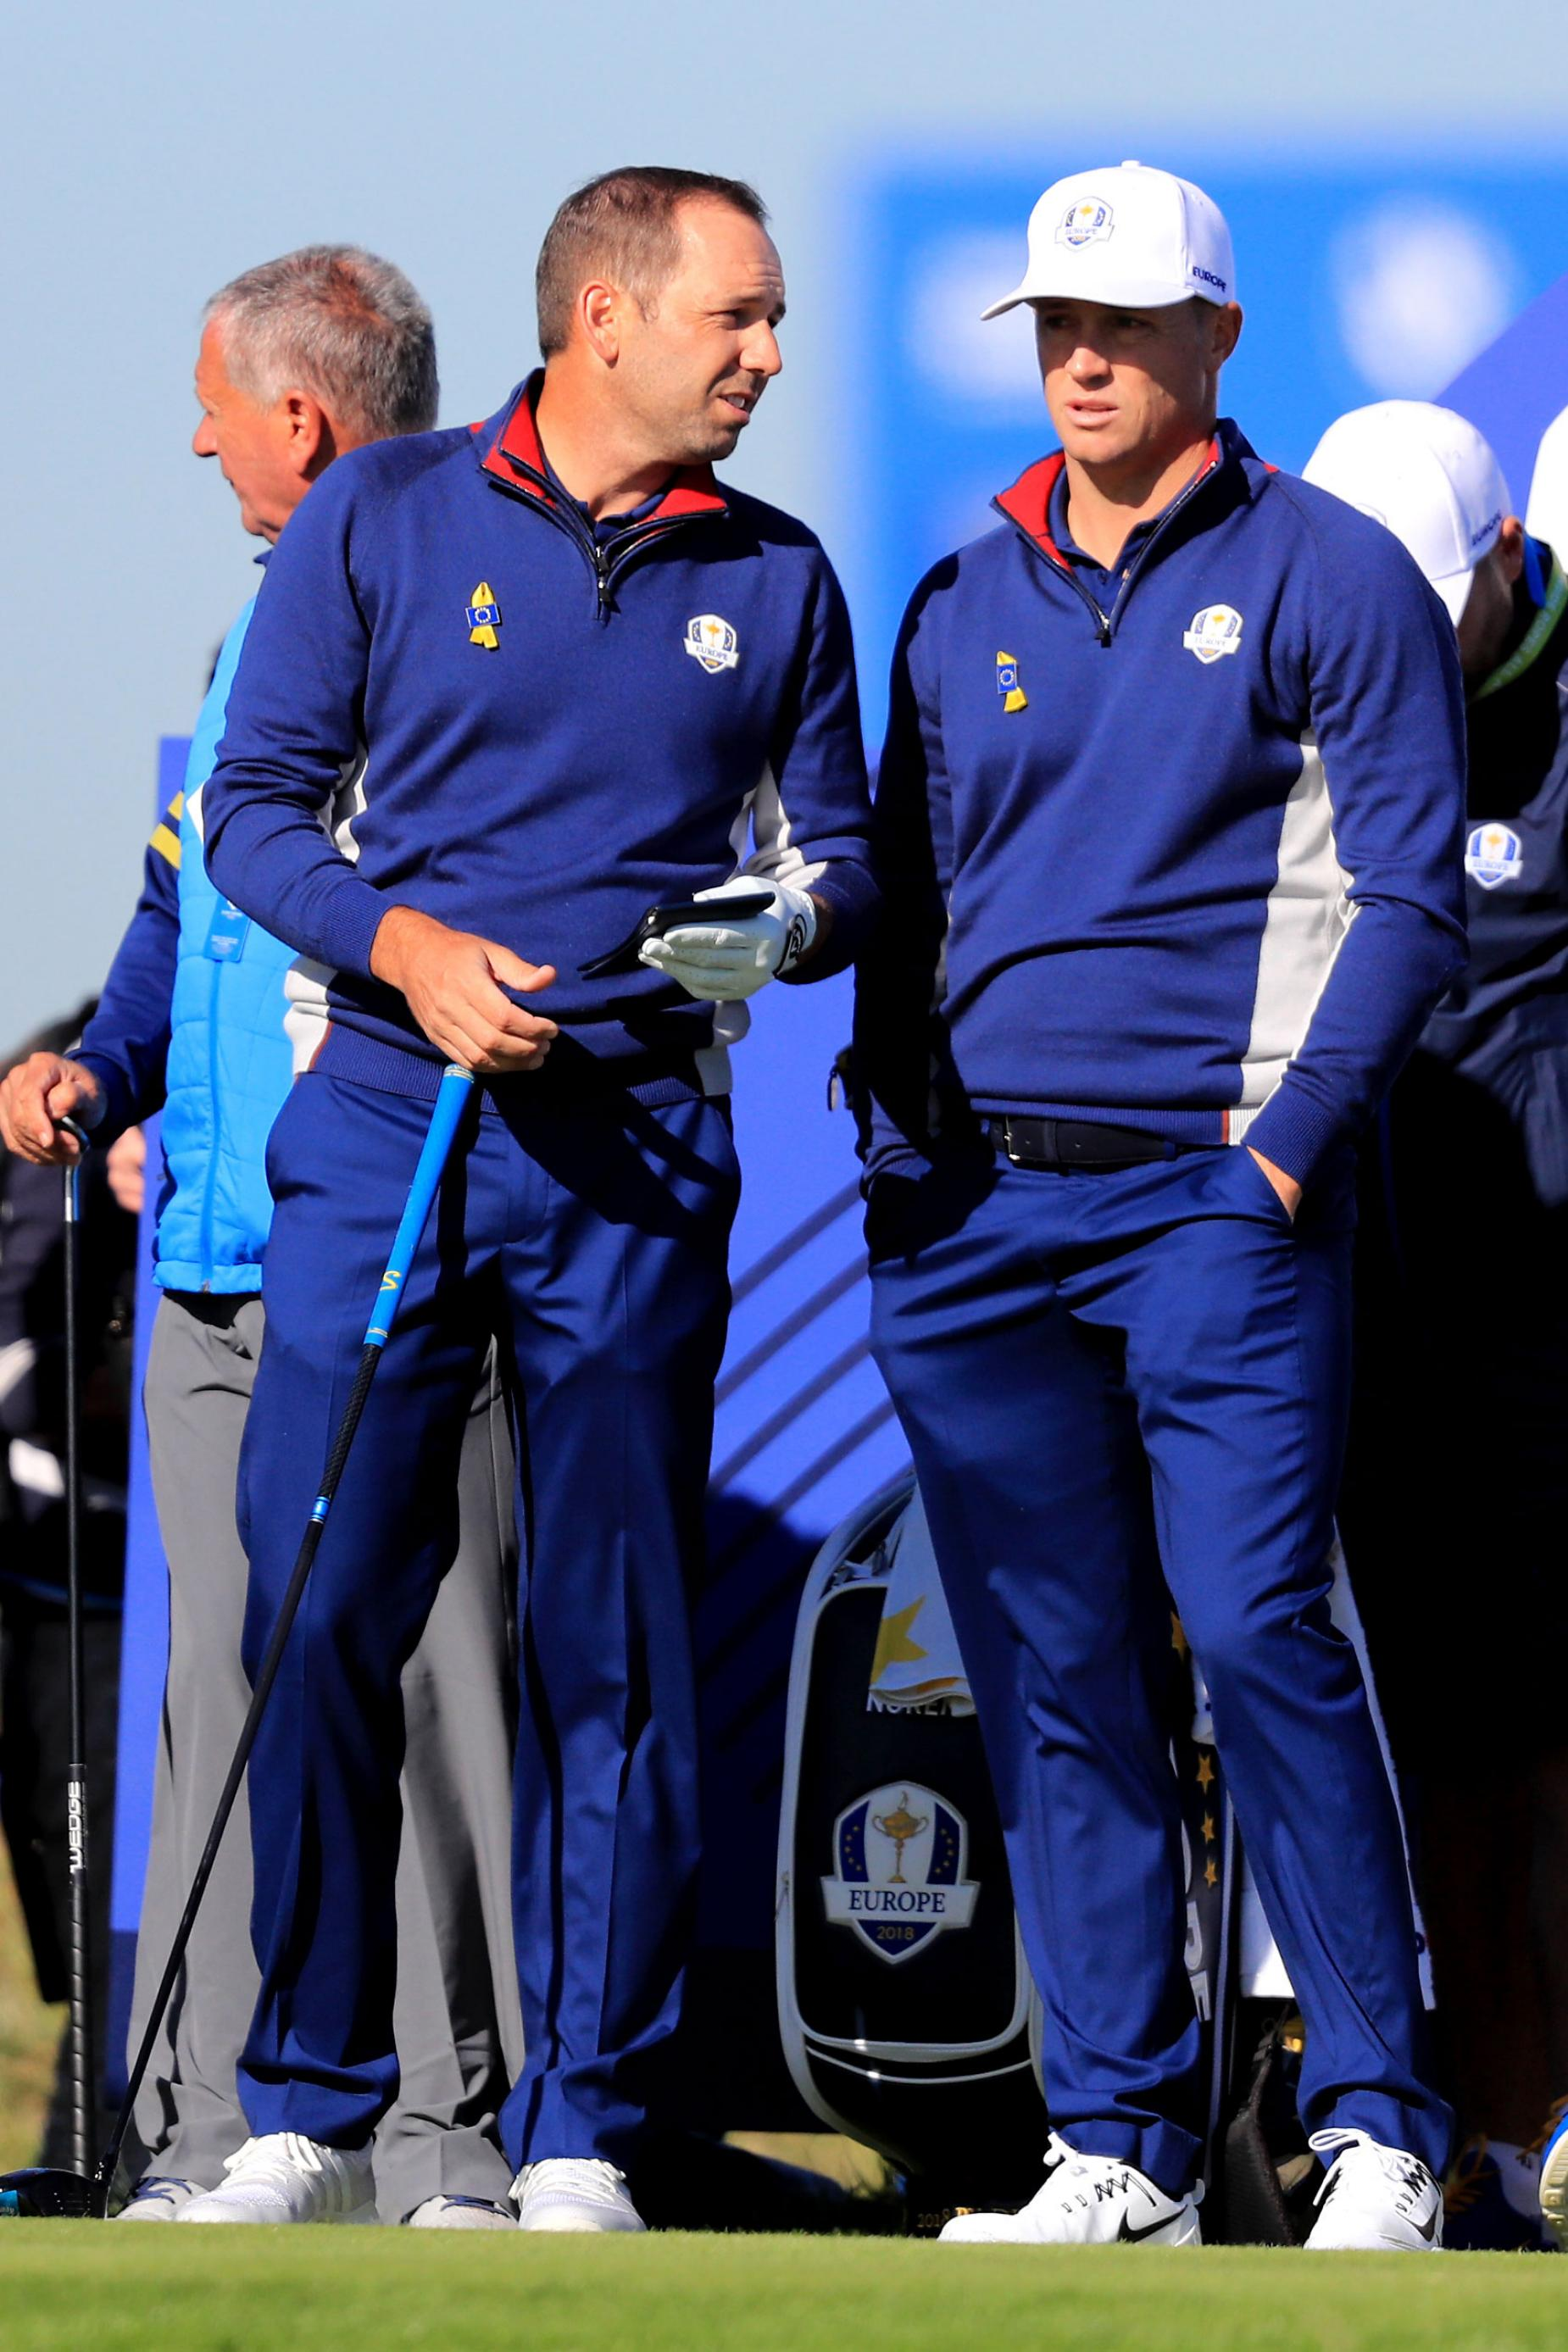 sergio-garcia-alex-noren-ryder-cup-2018-tuesday-yellow-ribbons.jpg